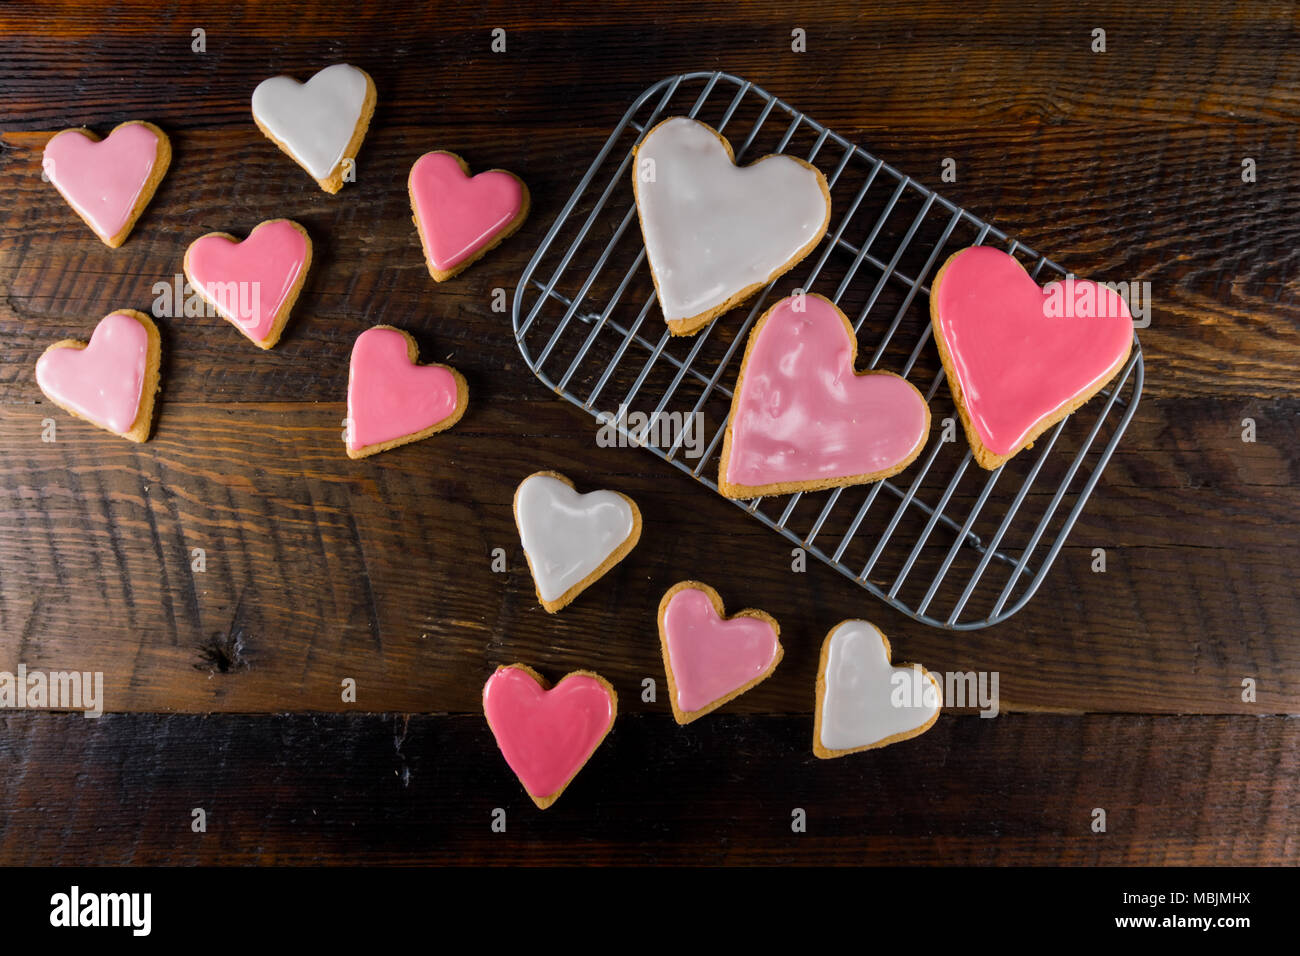 Heart Shaped Cookies On Cooling Rack and Table Top - Stock Image